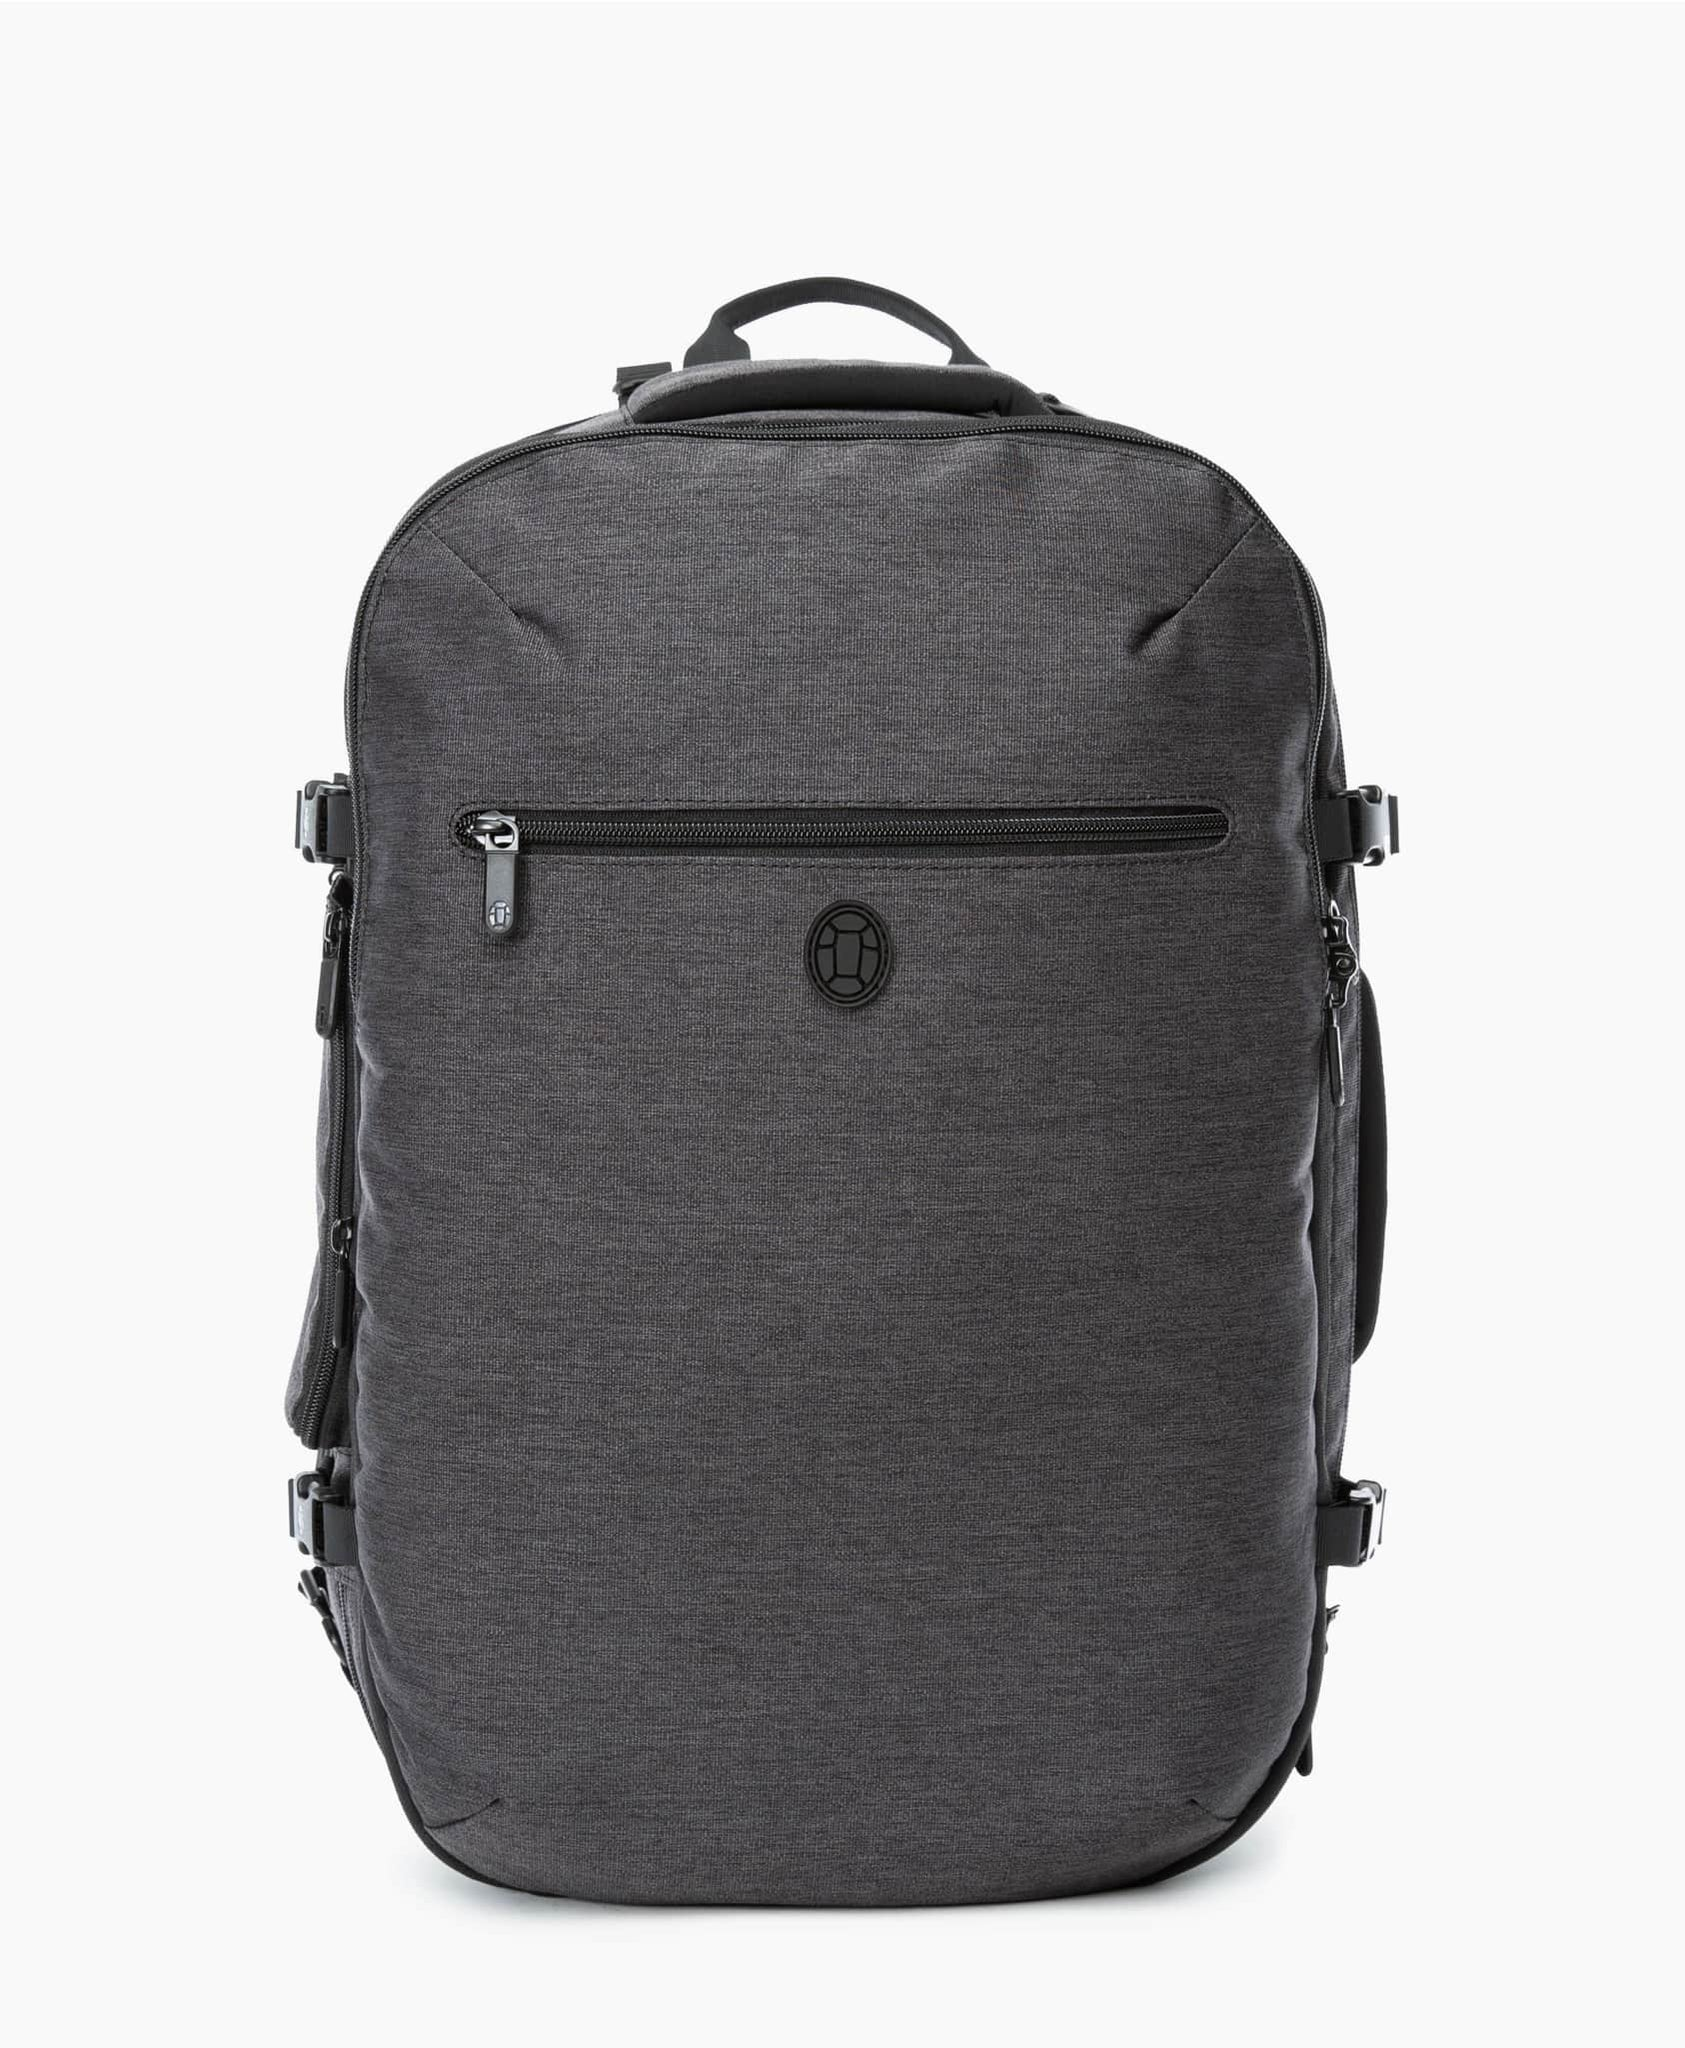 product/ The expandable carry on for short trips